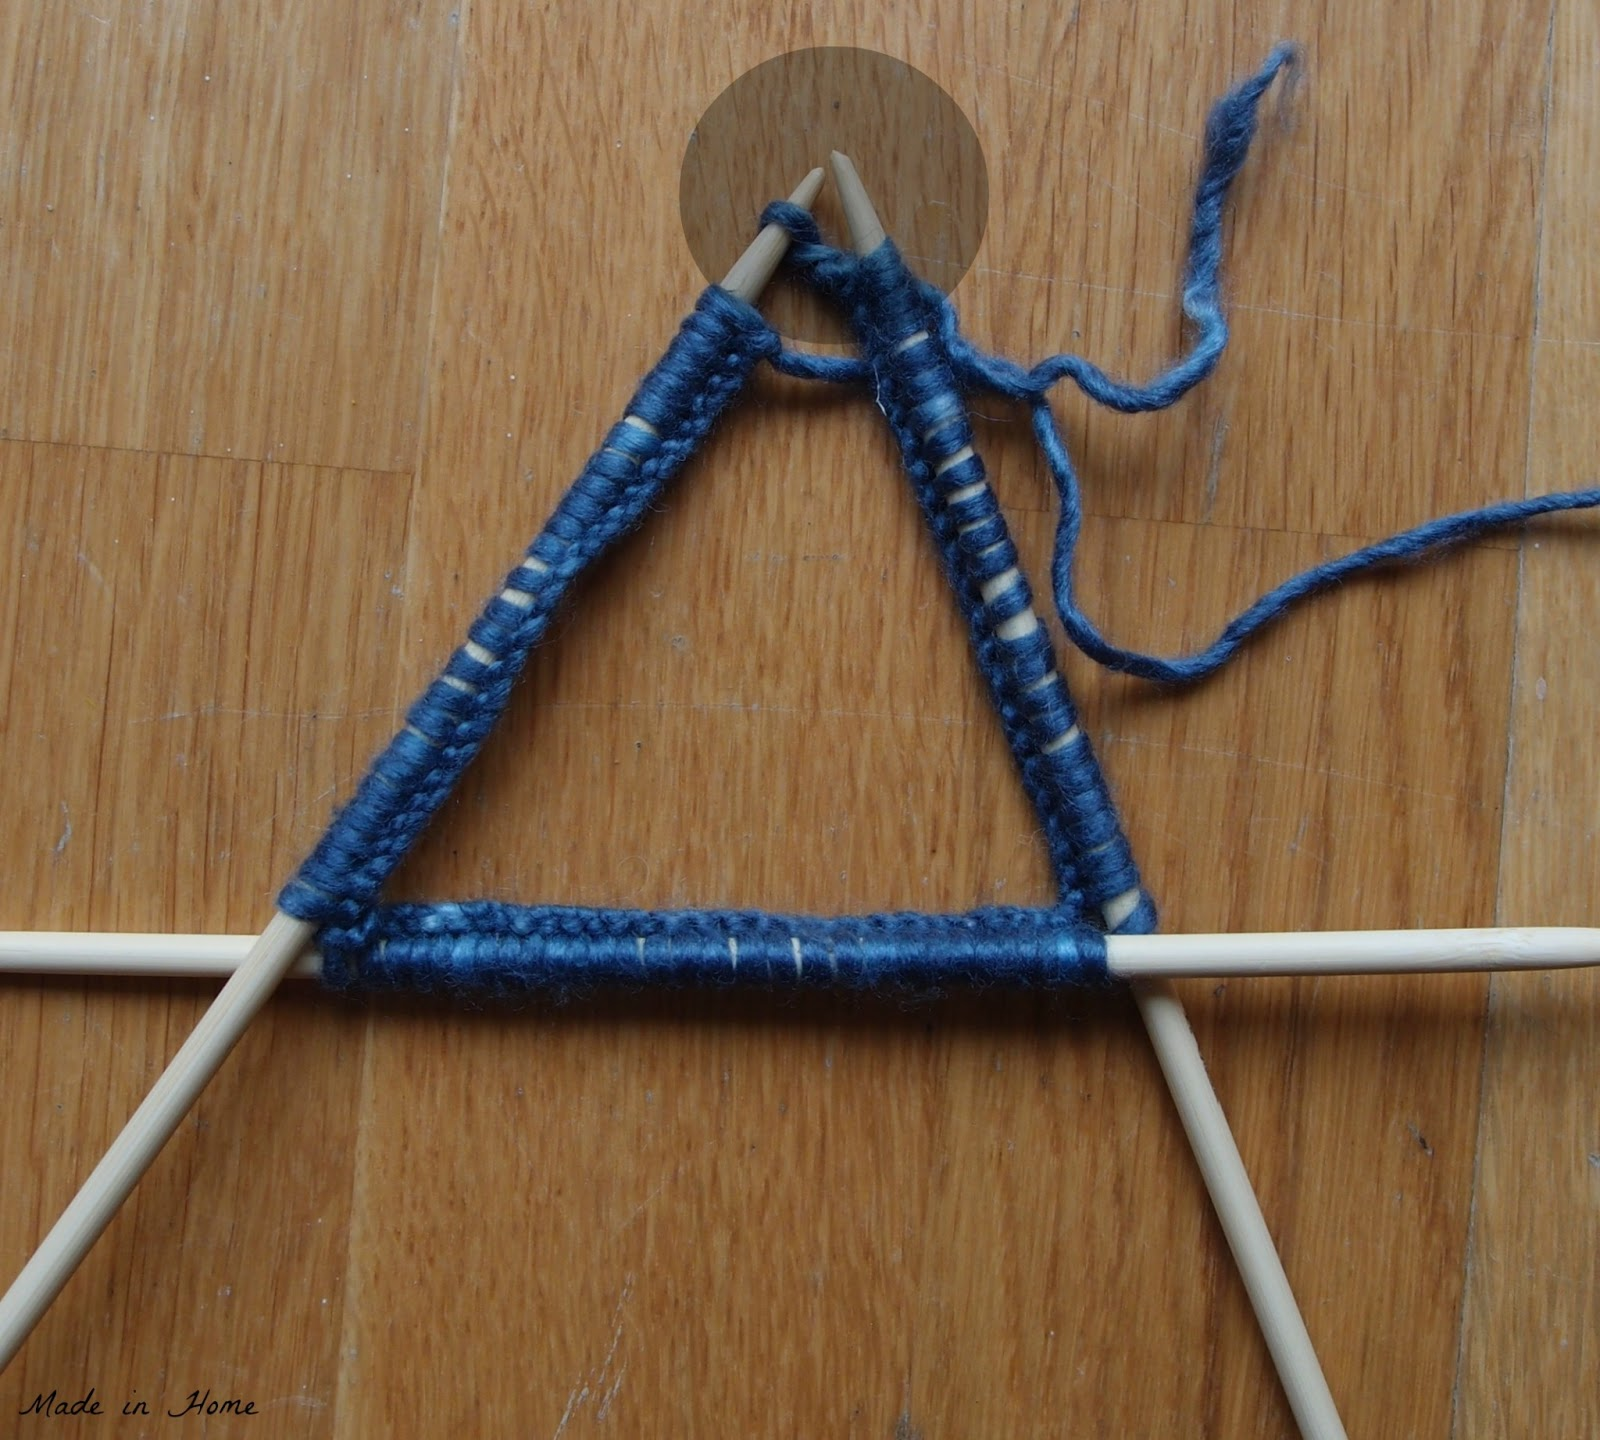 Joining Knitting In The Round Double Pointed Needles : Made in home how to sunday joining when knitting the